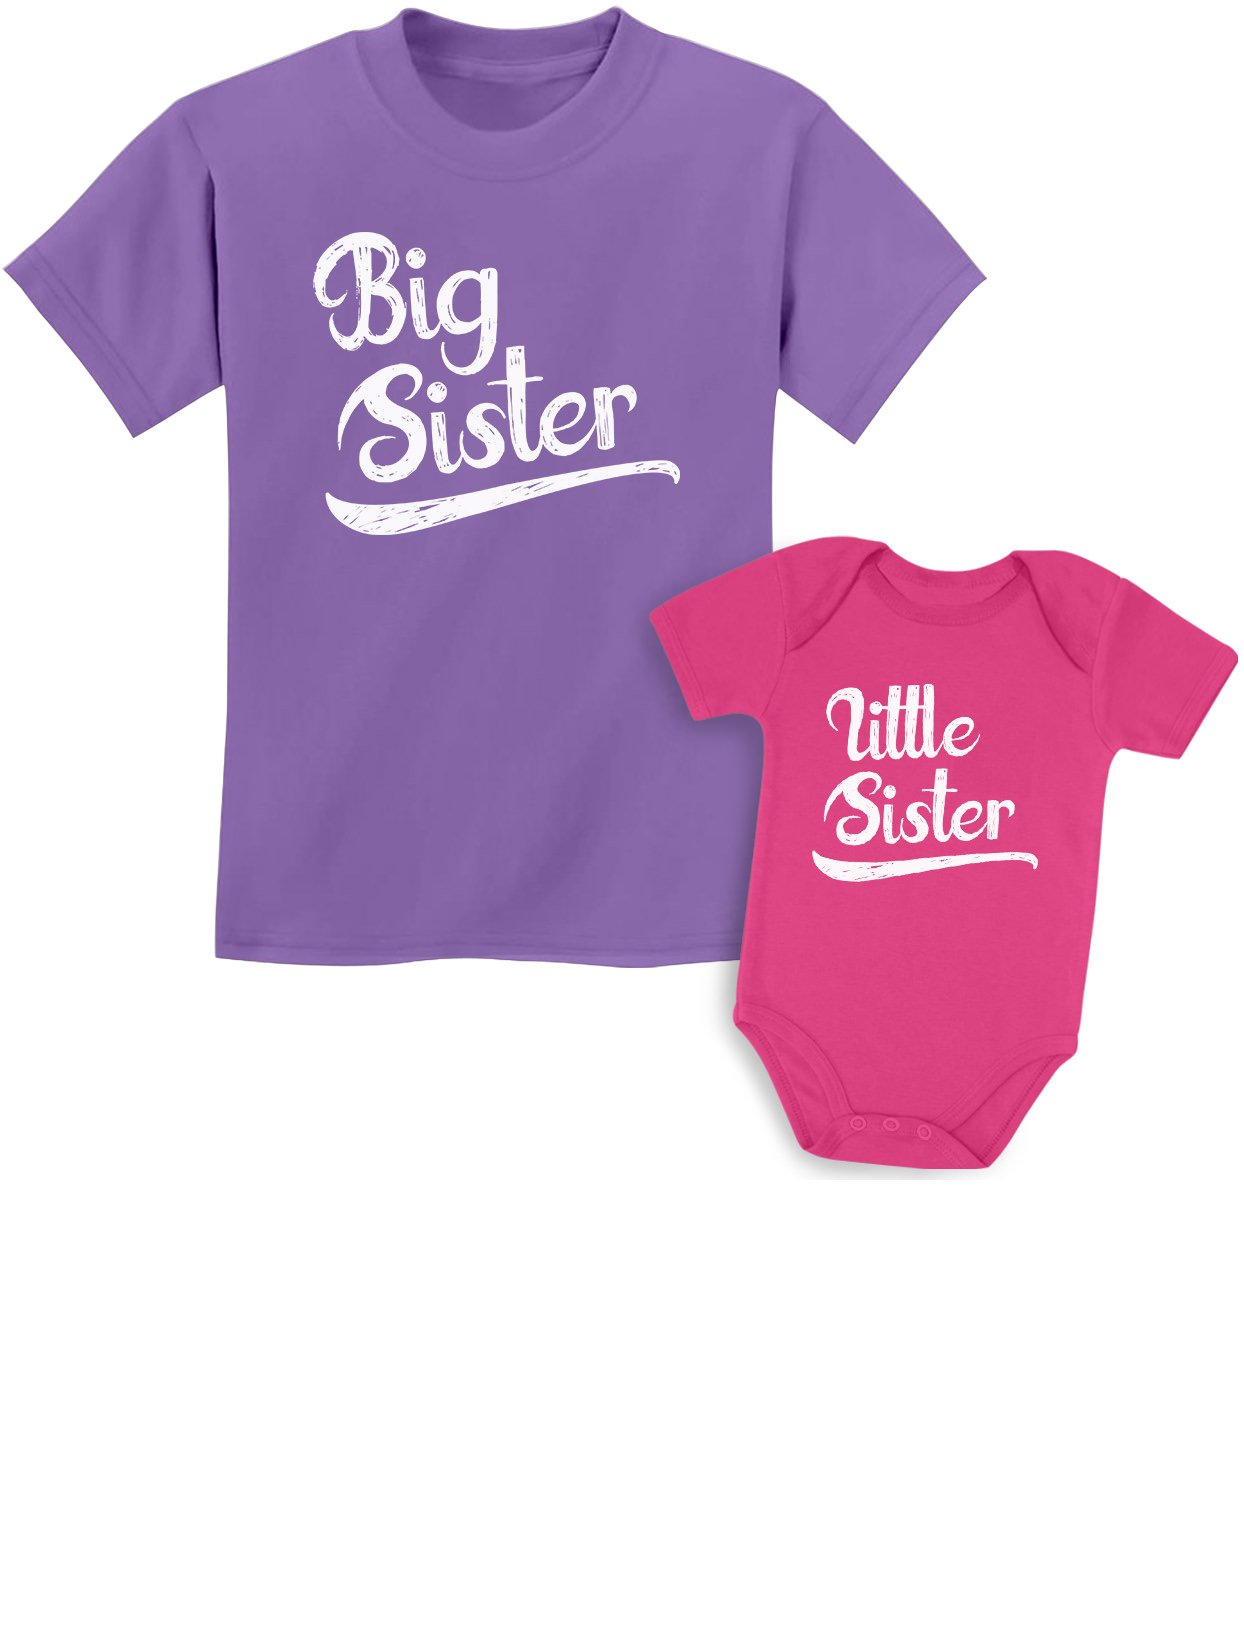 Sibling Shirts Set for Big Sisters and Little Sisters Girls Gift Set